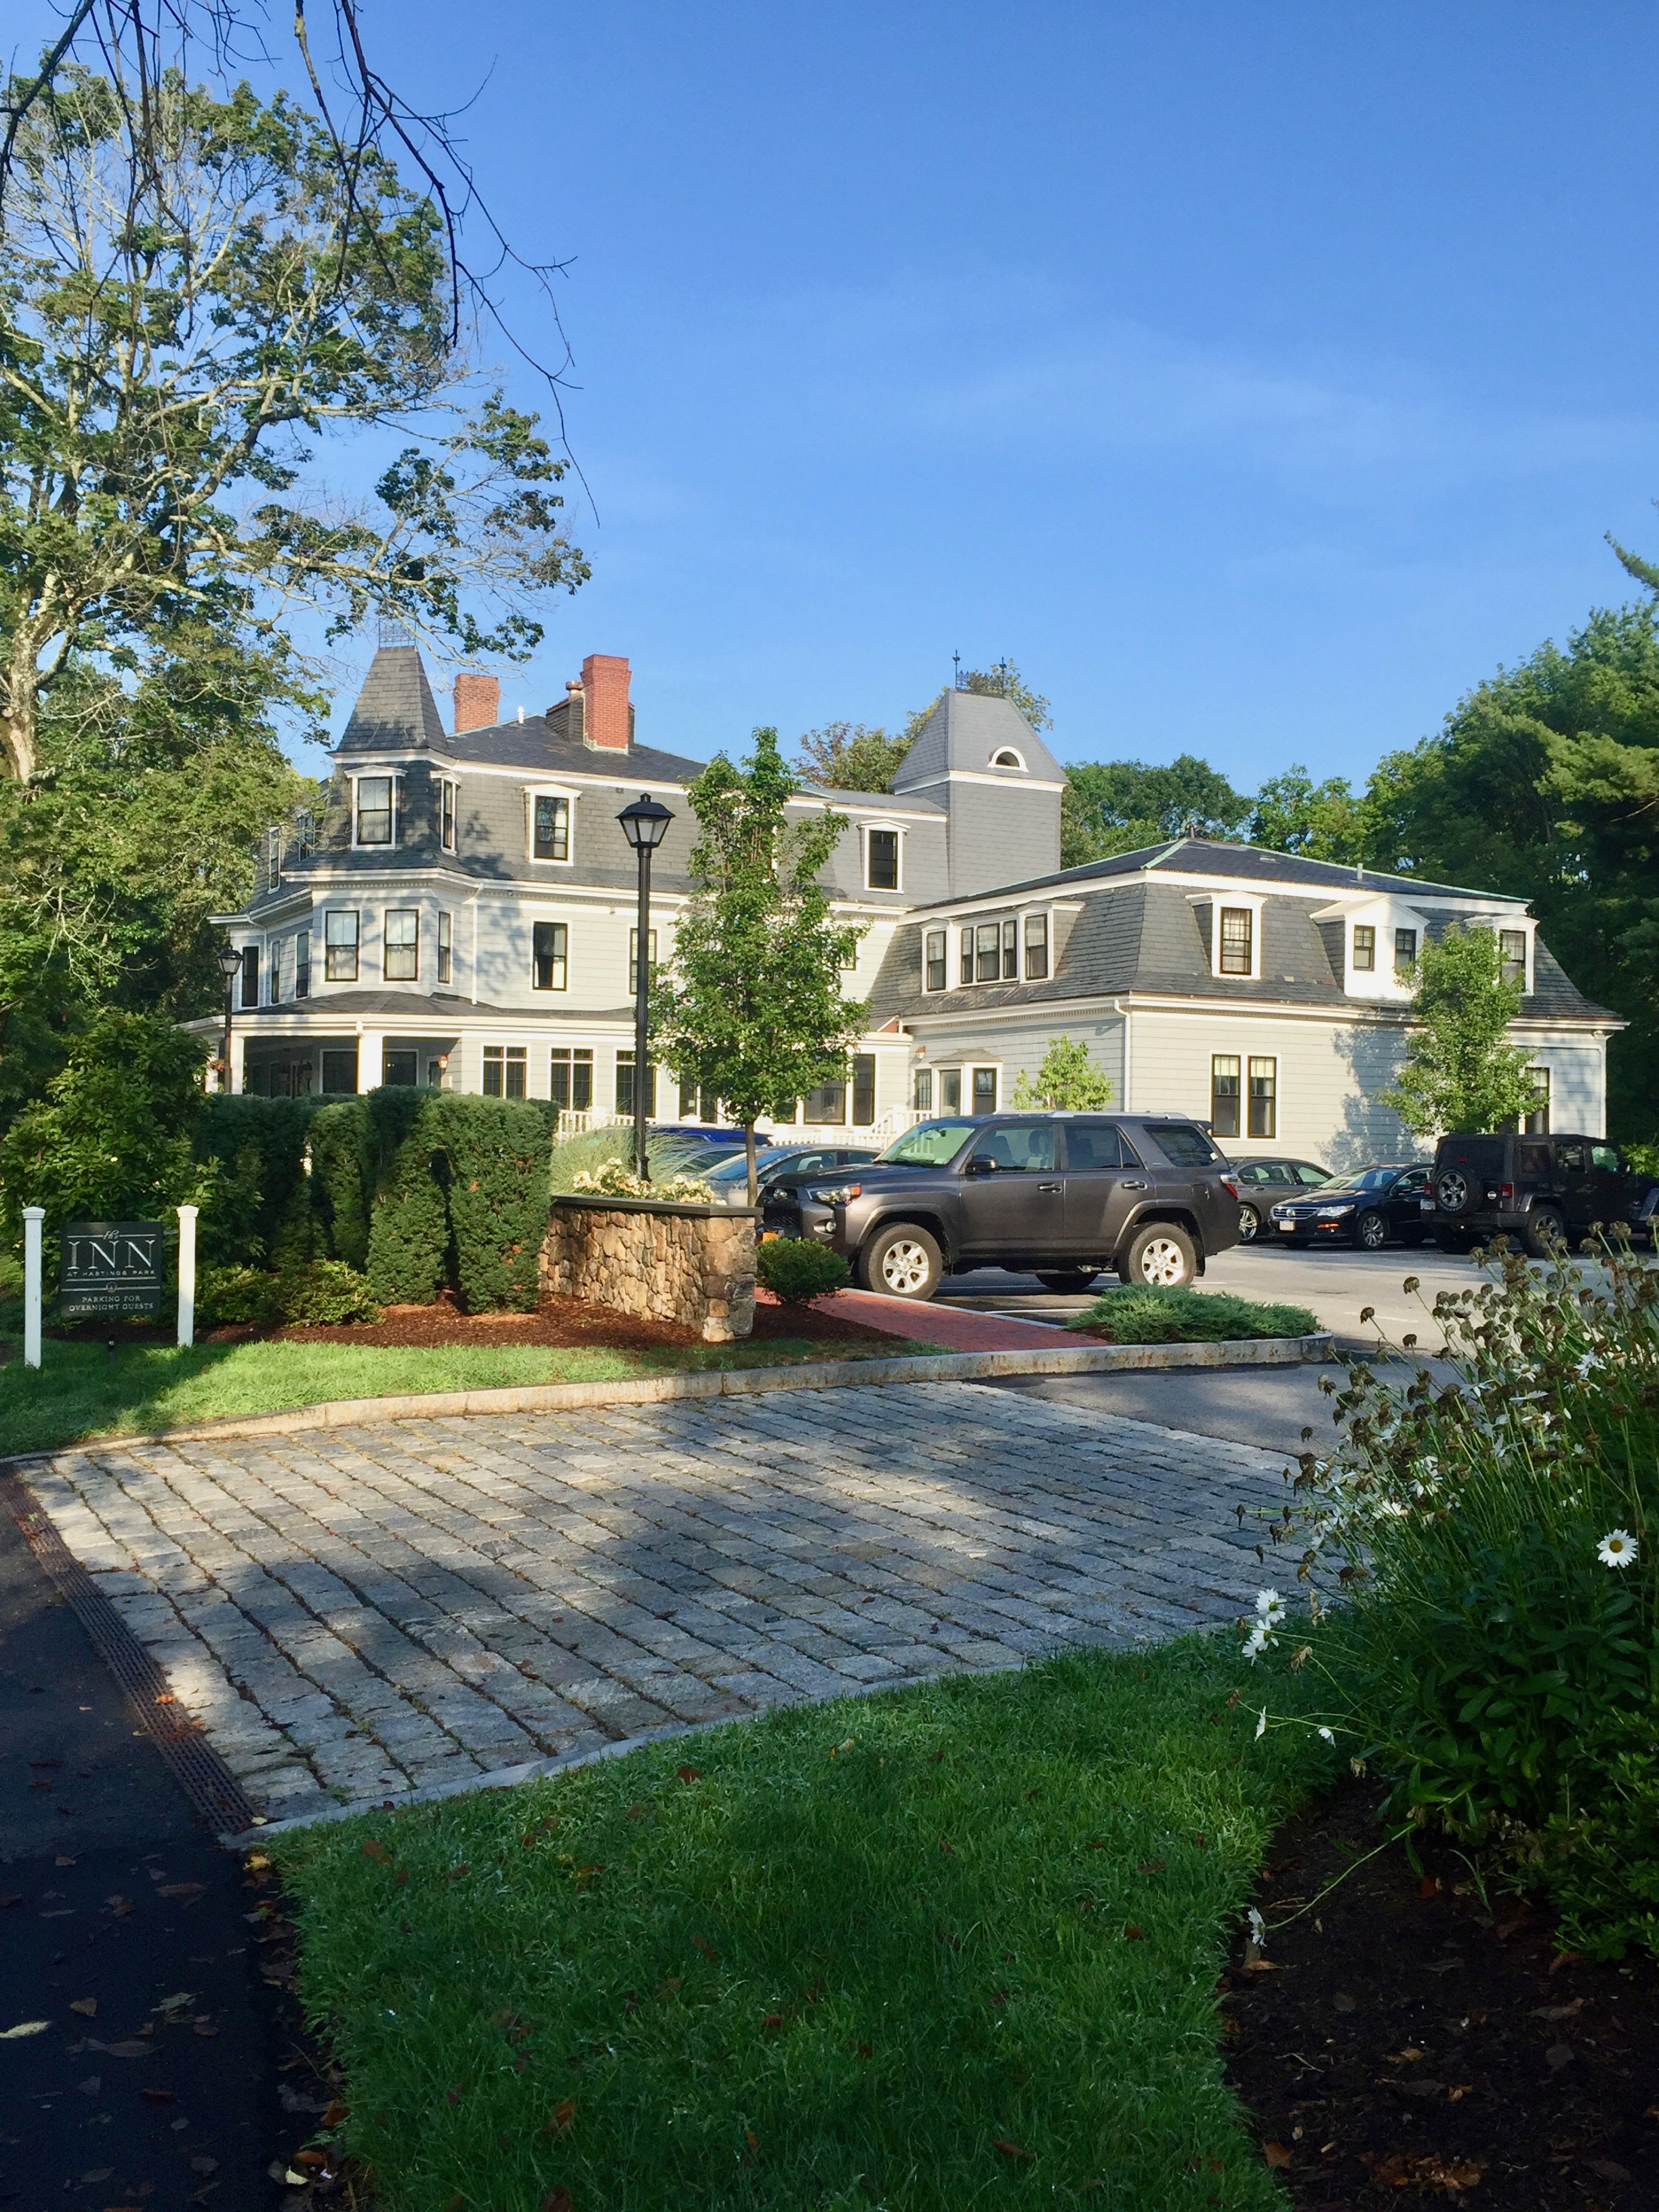 the inn at Hastings park Lexington ma luxury inn relais chateaux